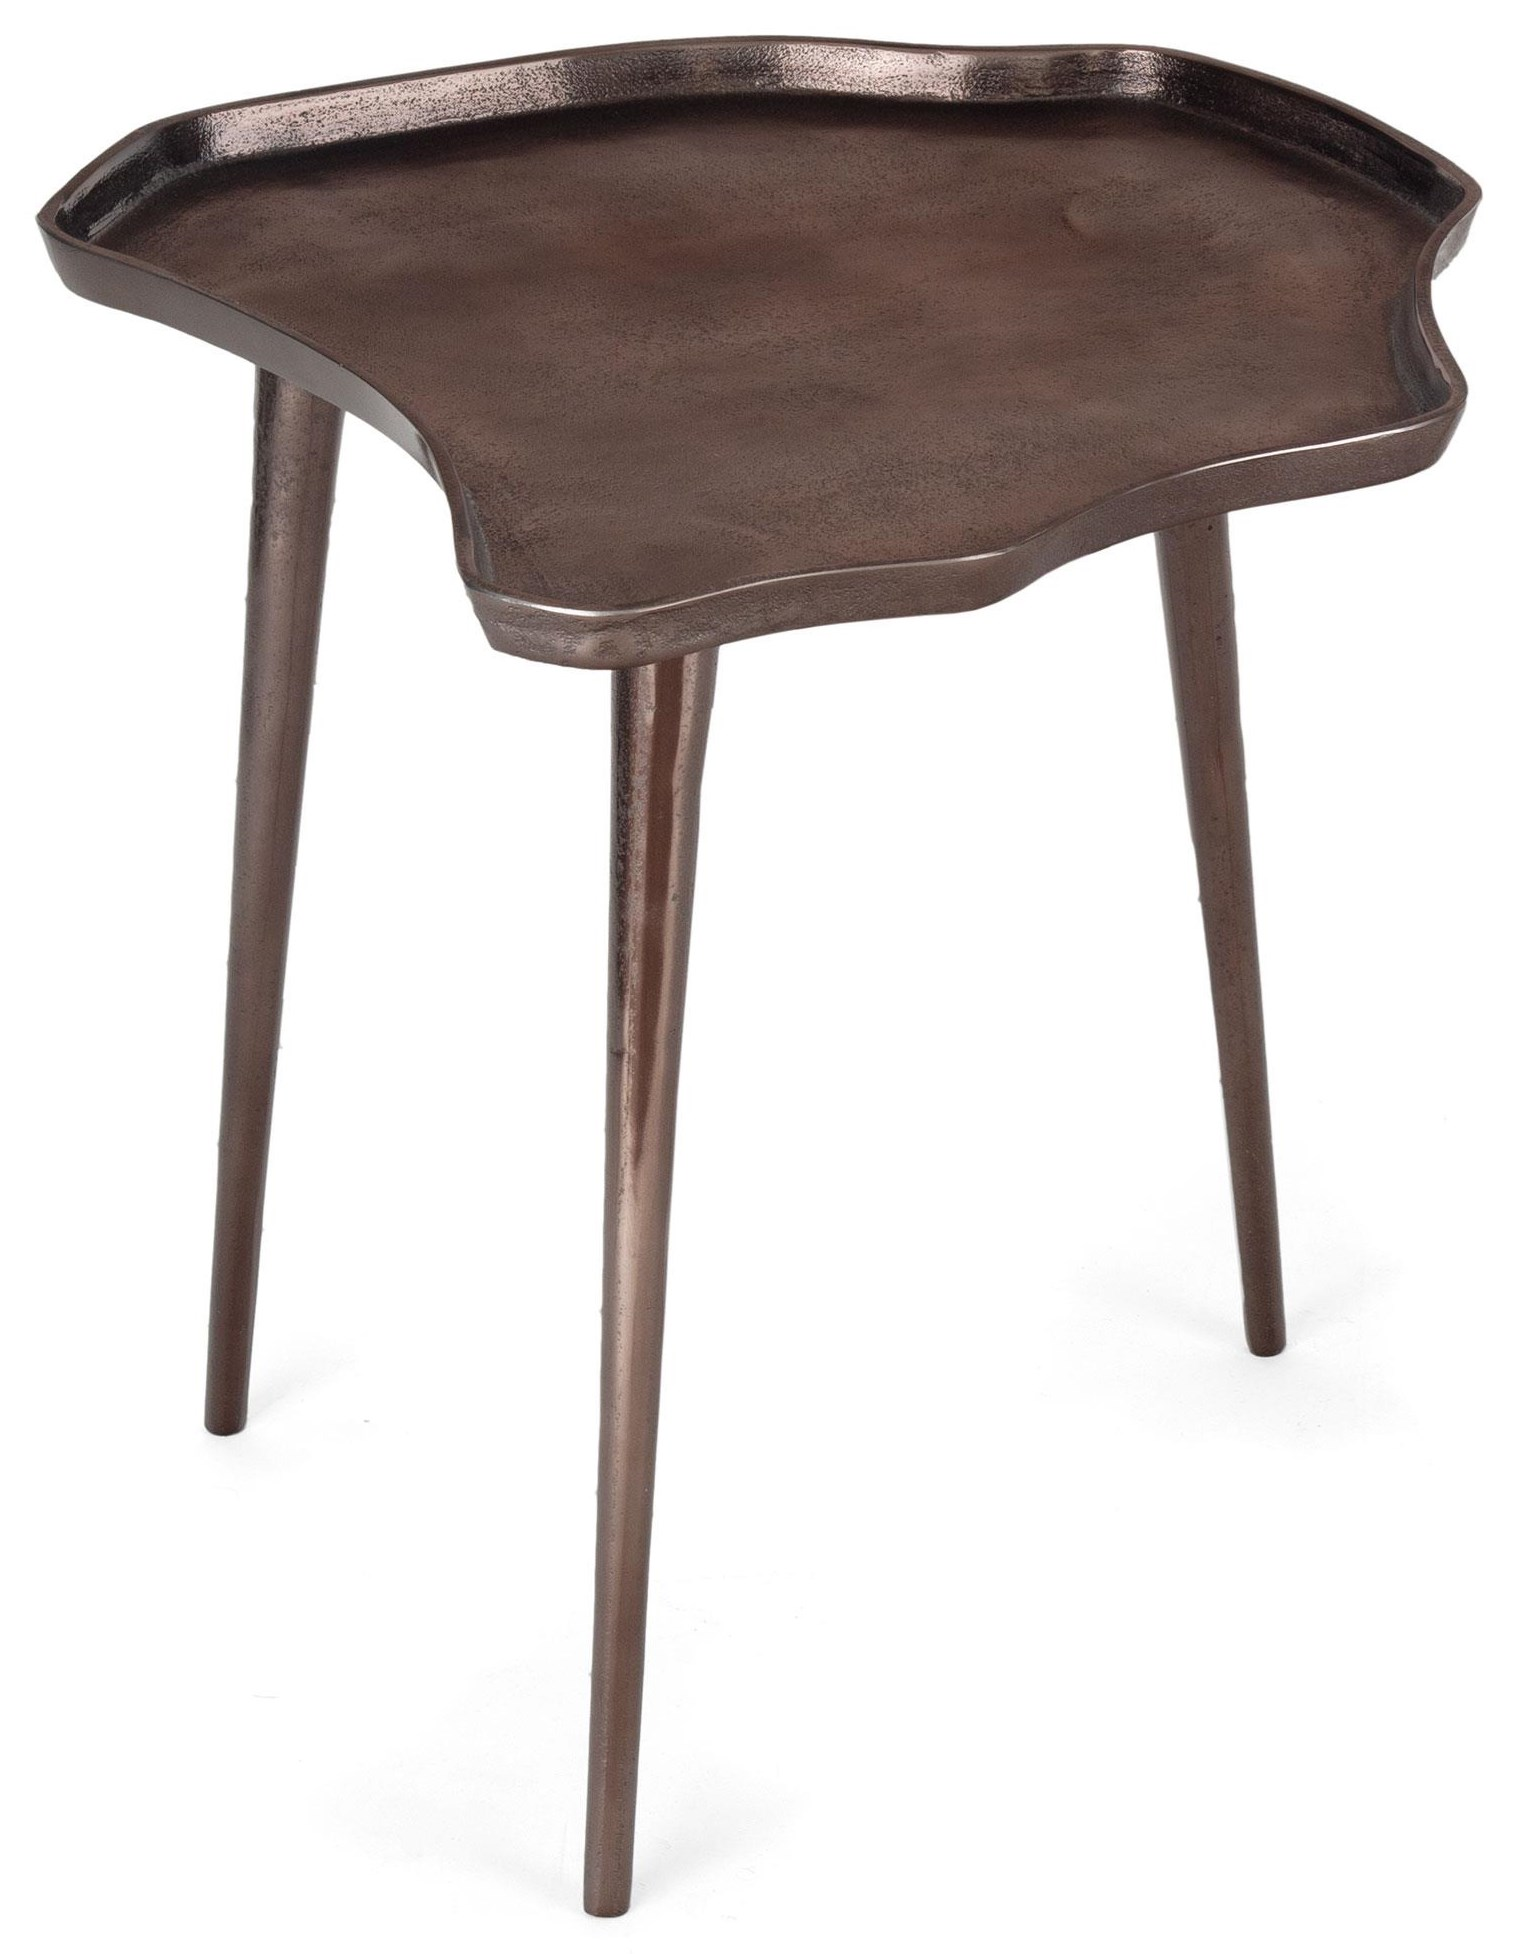 LINNEA Side Table at Bennett's Furniture and Mattresses